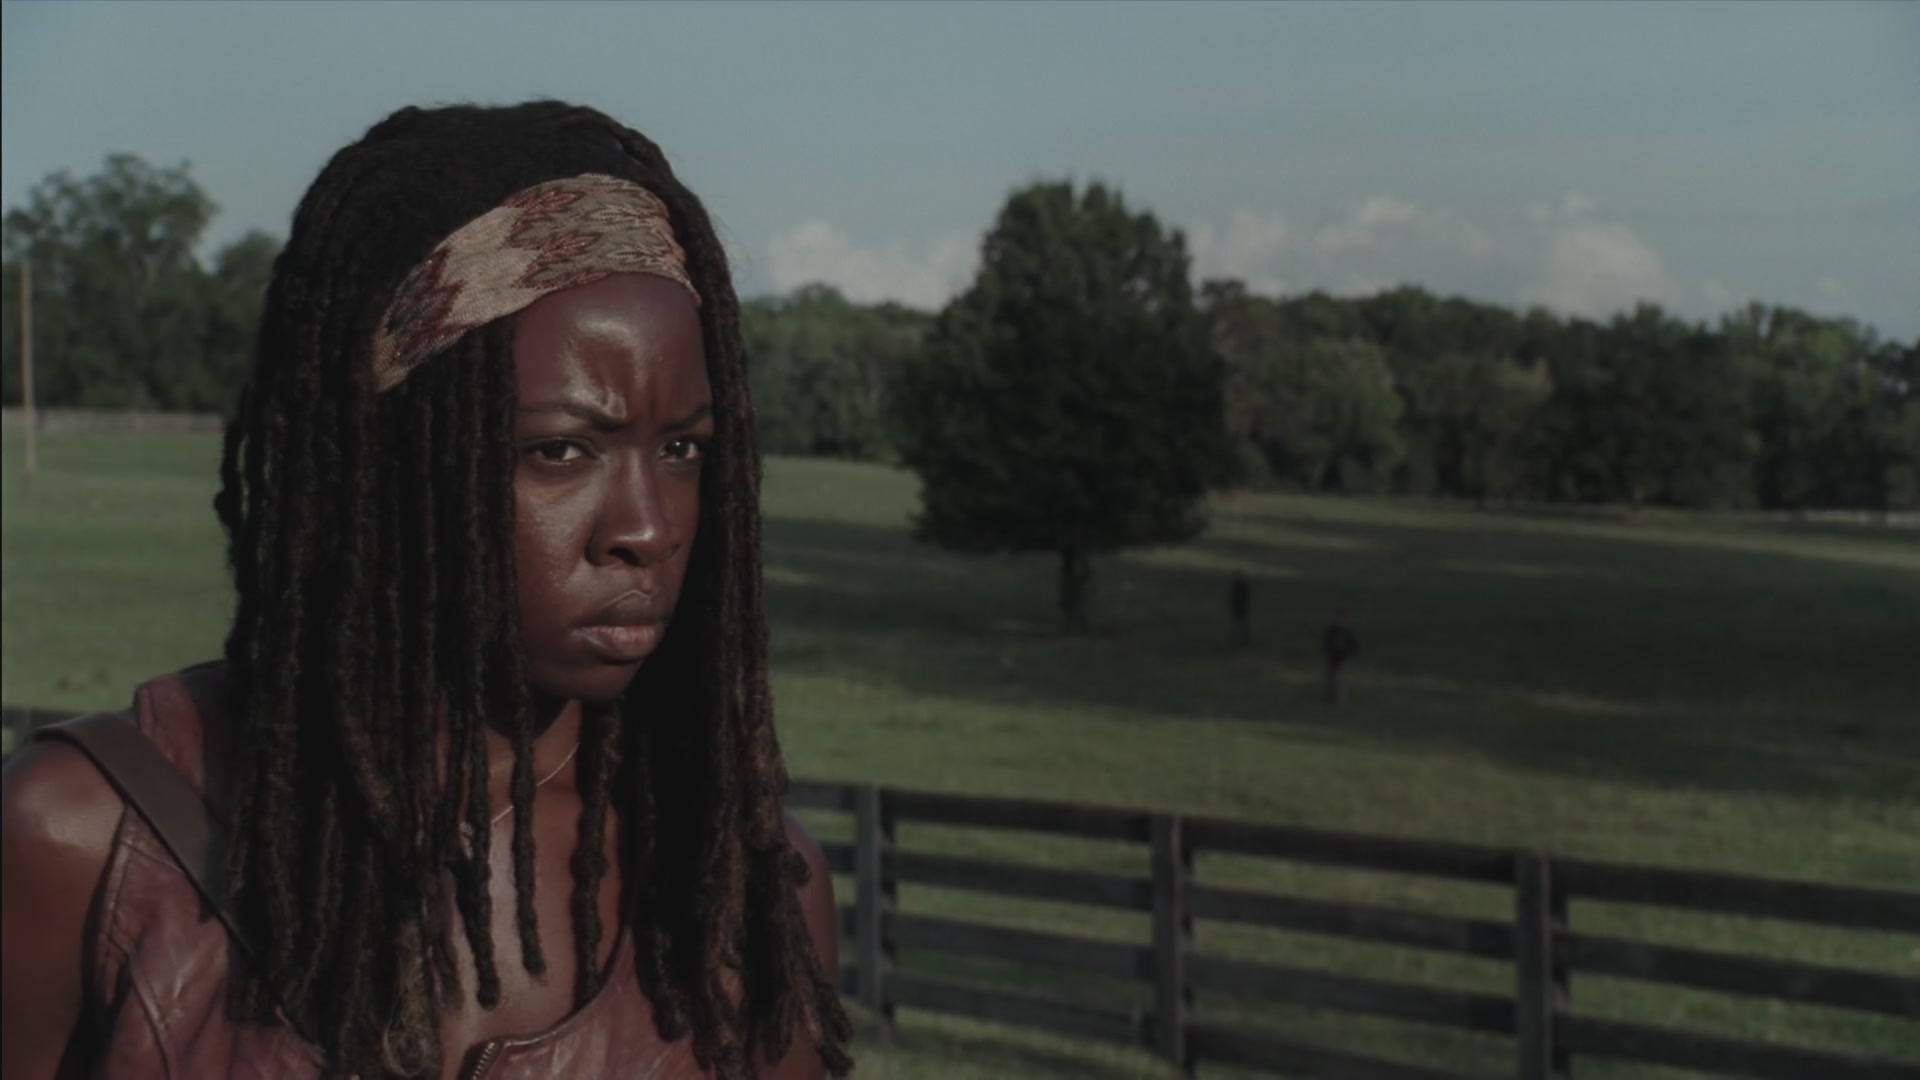 'The Walking Dead' Season 3 Episode 3 Captures